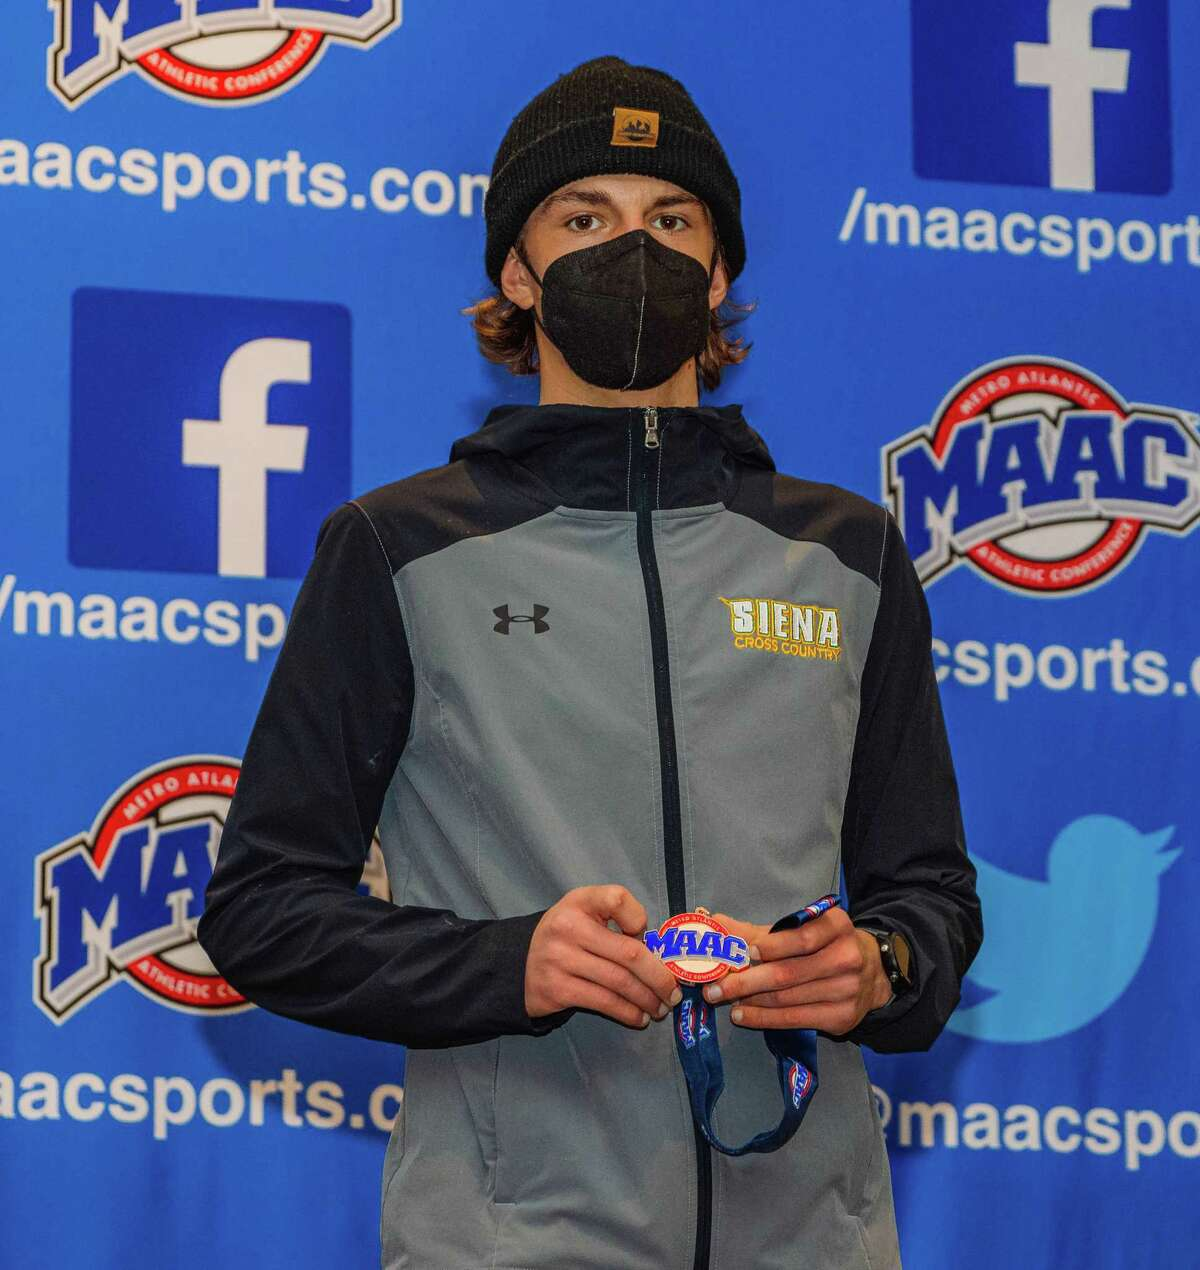 Siena sophomore Brandon Olden poses with his medal after finishing eighth in the 2021 MAAC Men's and Women's Cross Country Championships on Friday, March 5, with a time of 22:48.62.